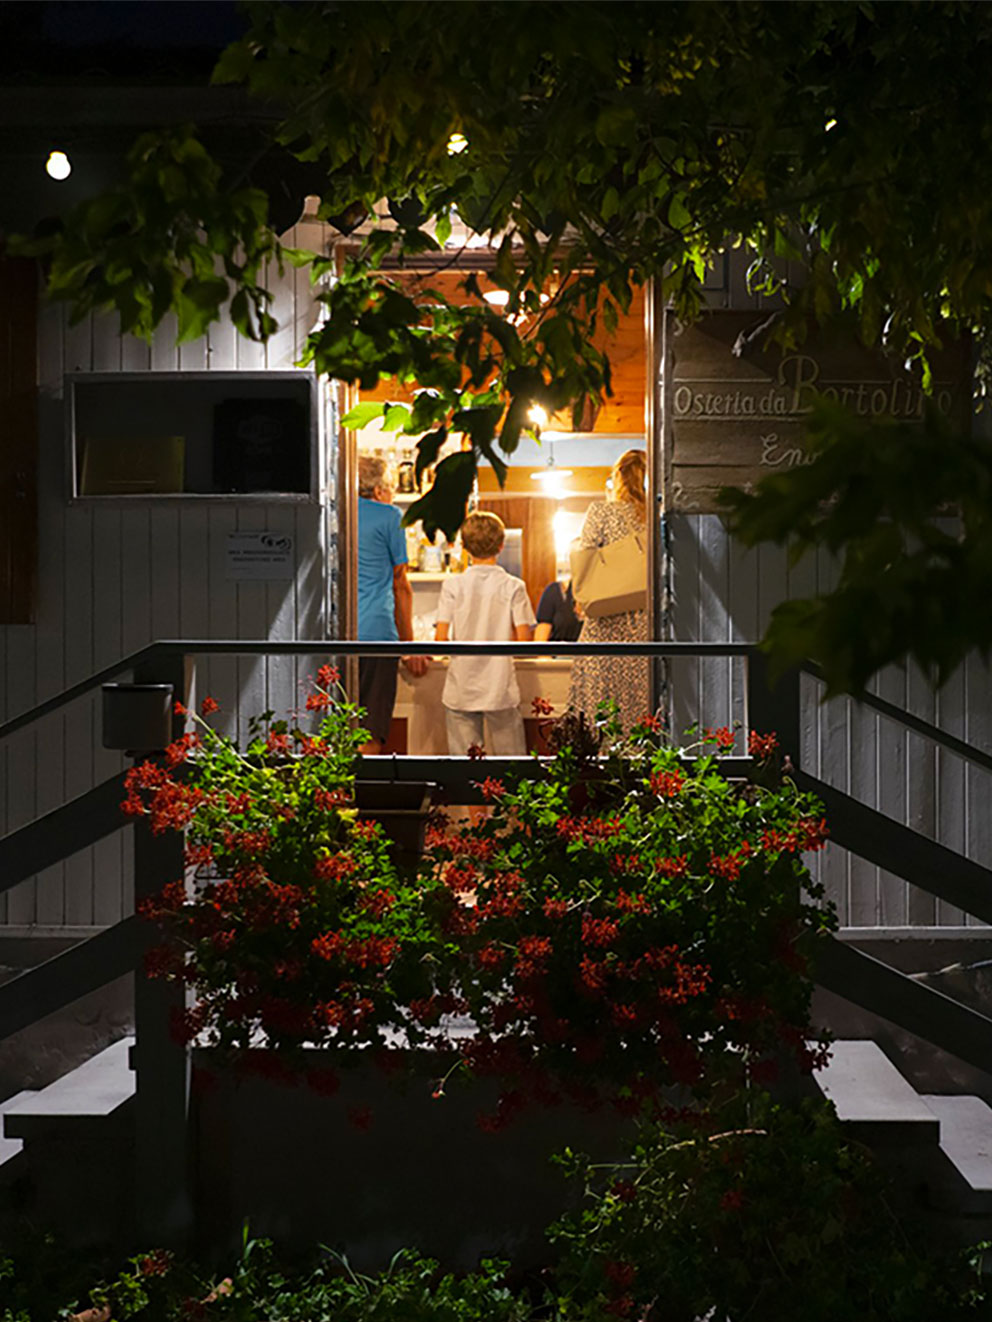 Night view entrance Locanda Bortolino Restaurant as seen from the outside